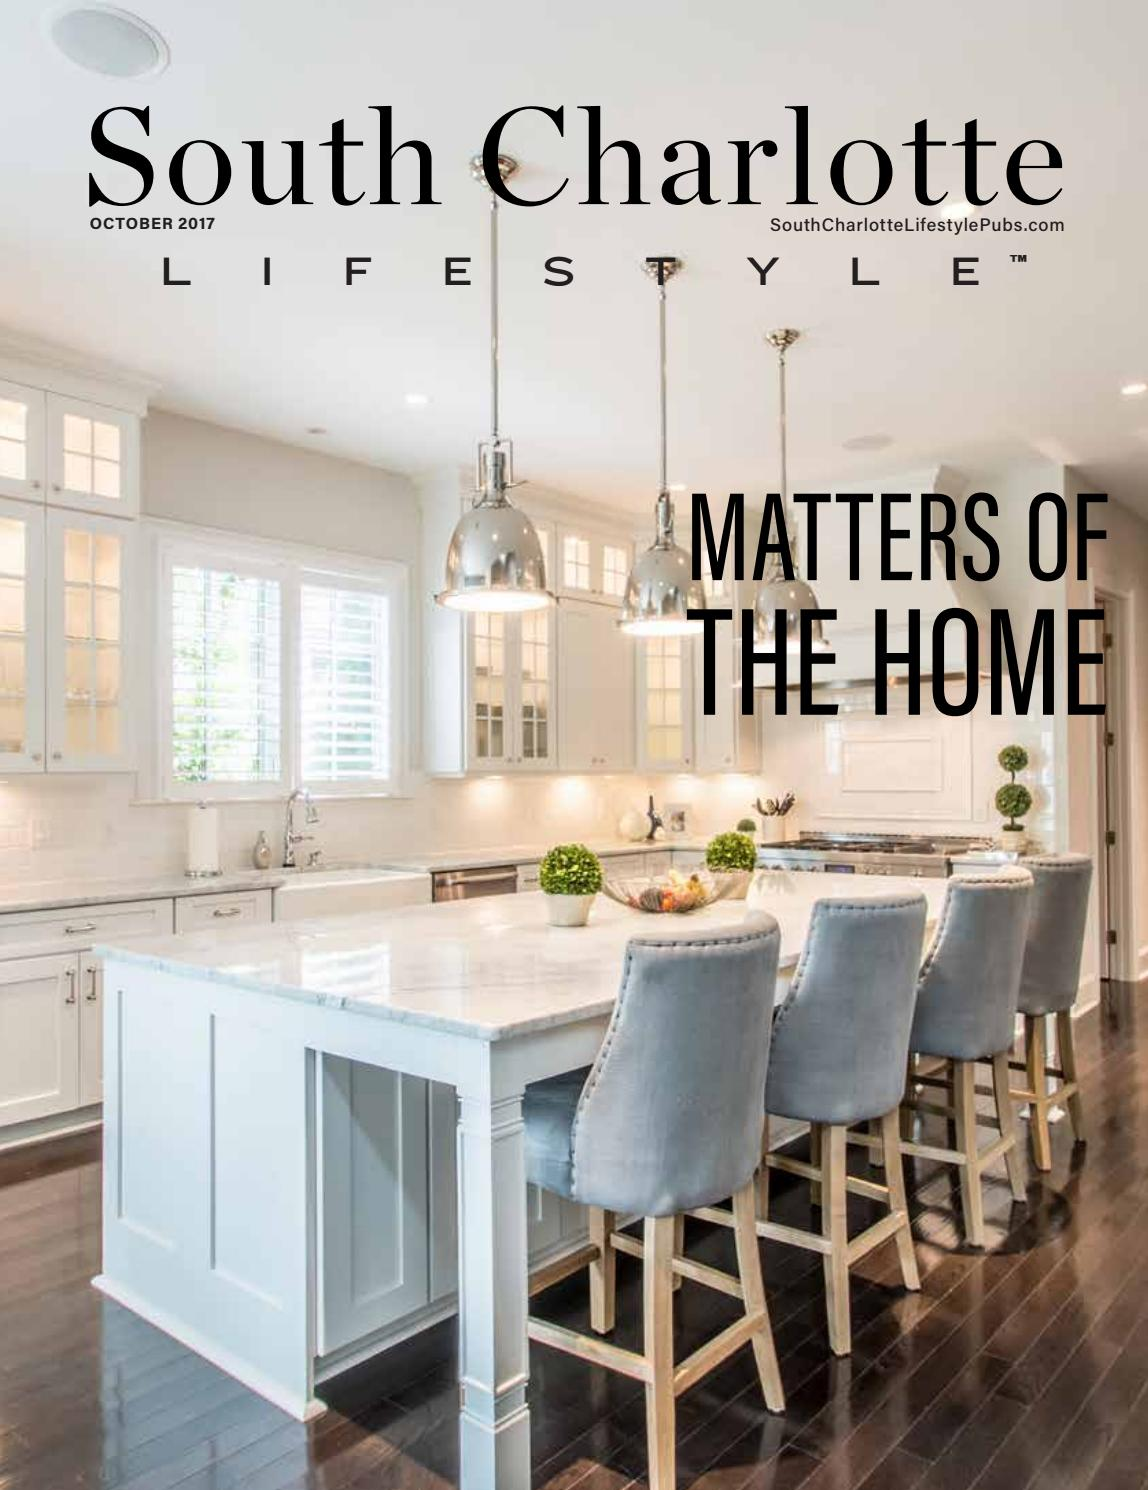 South Charlotte October 2017 by Lifestyle Publications - issuu